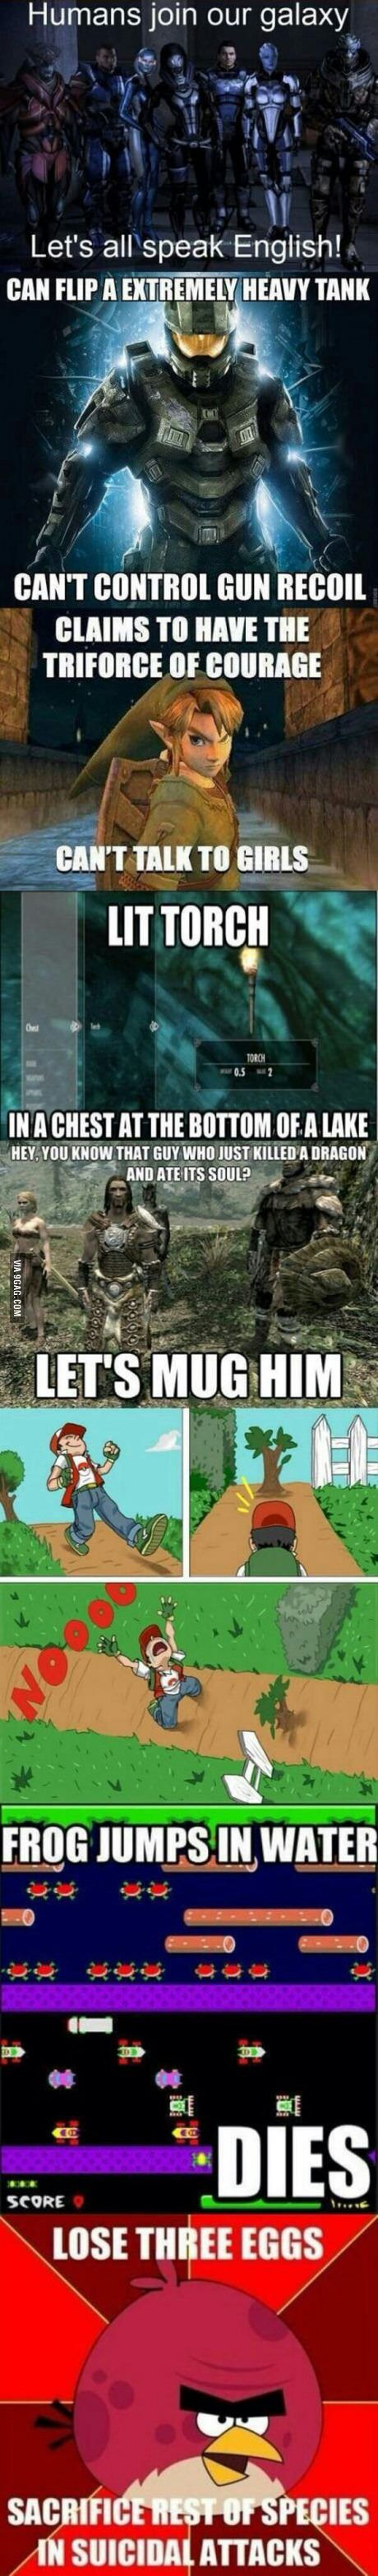 That's video game logic for you